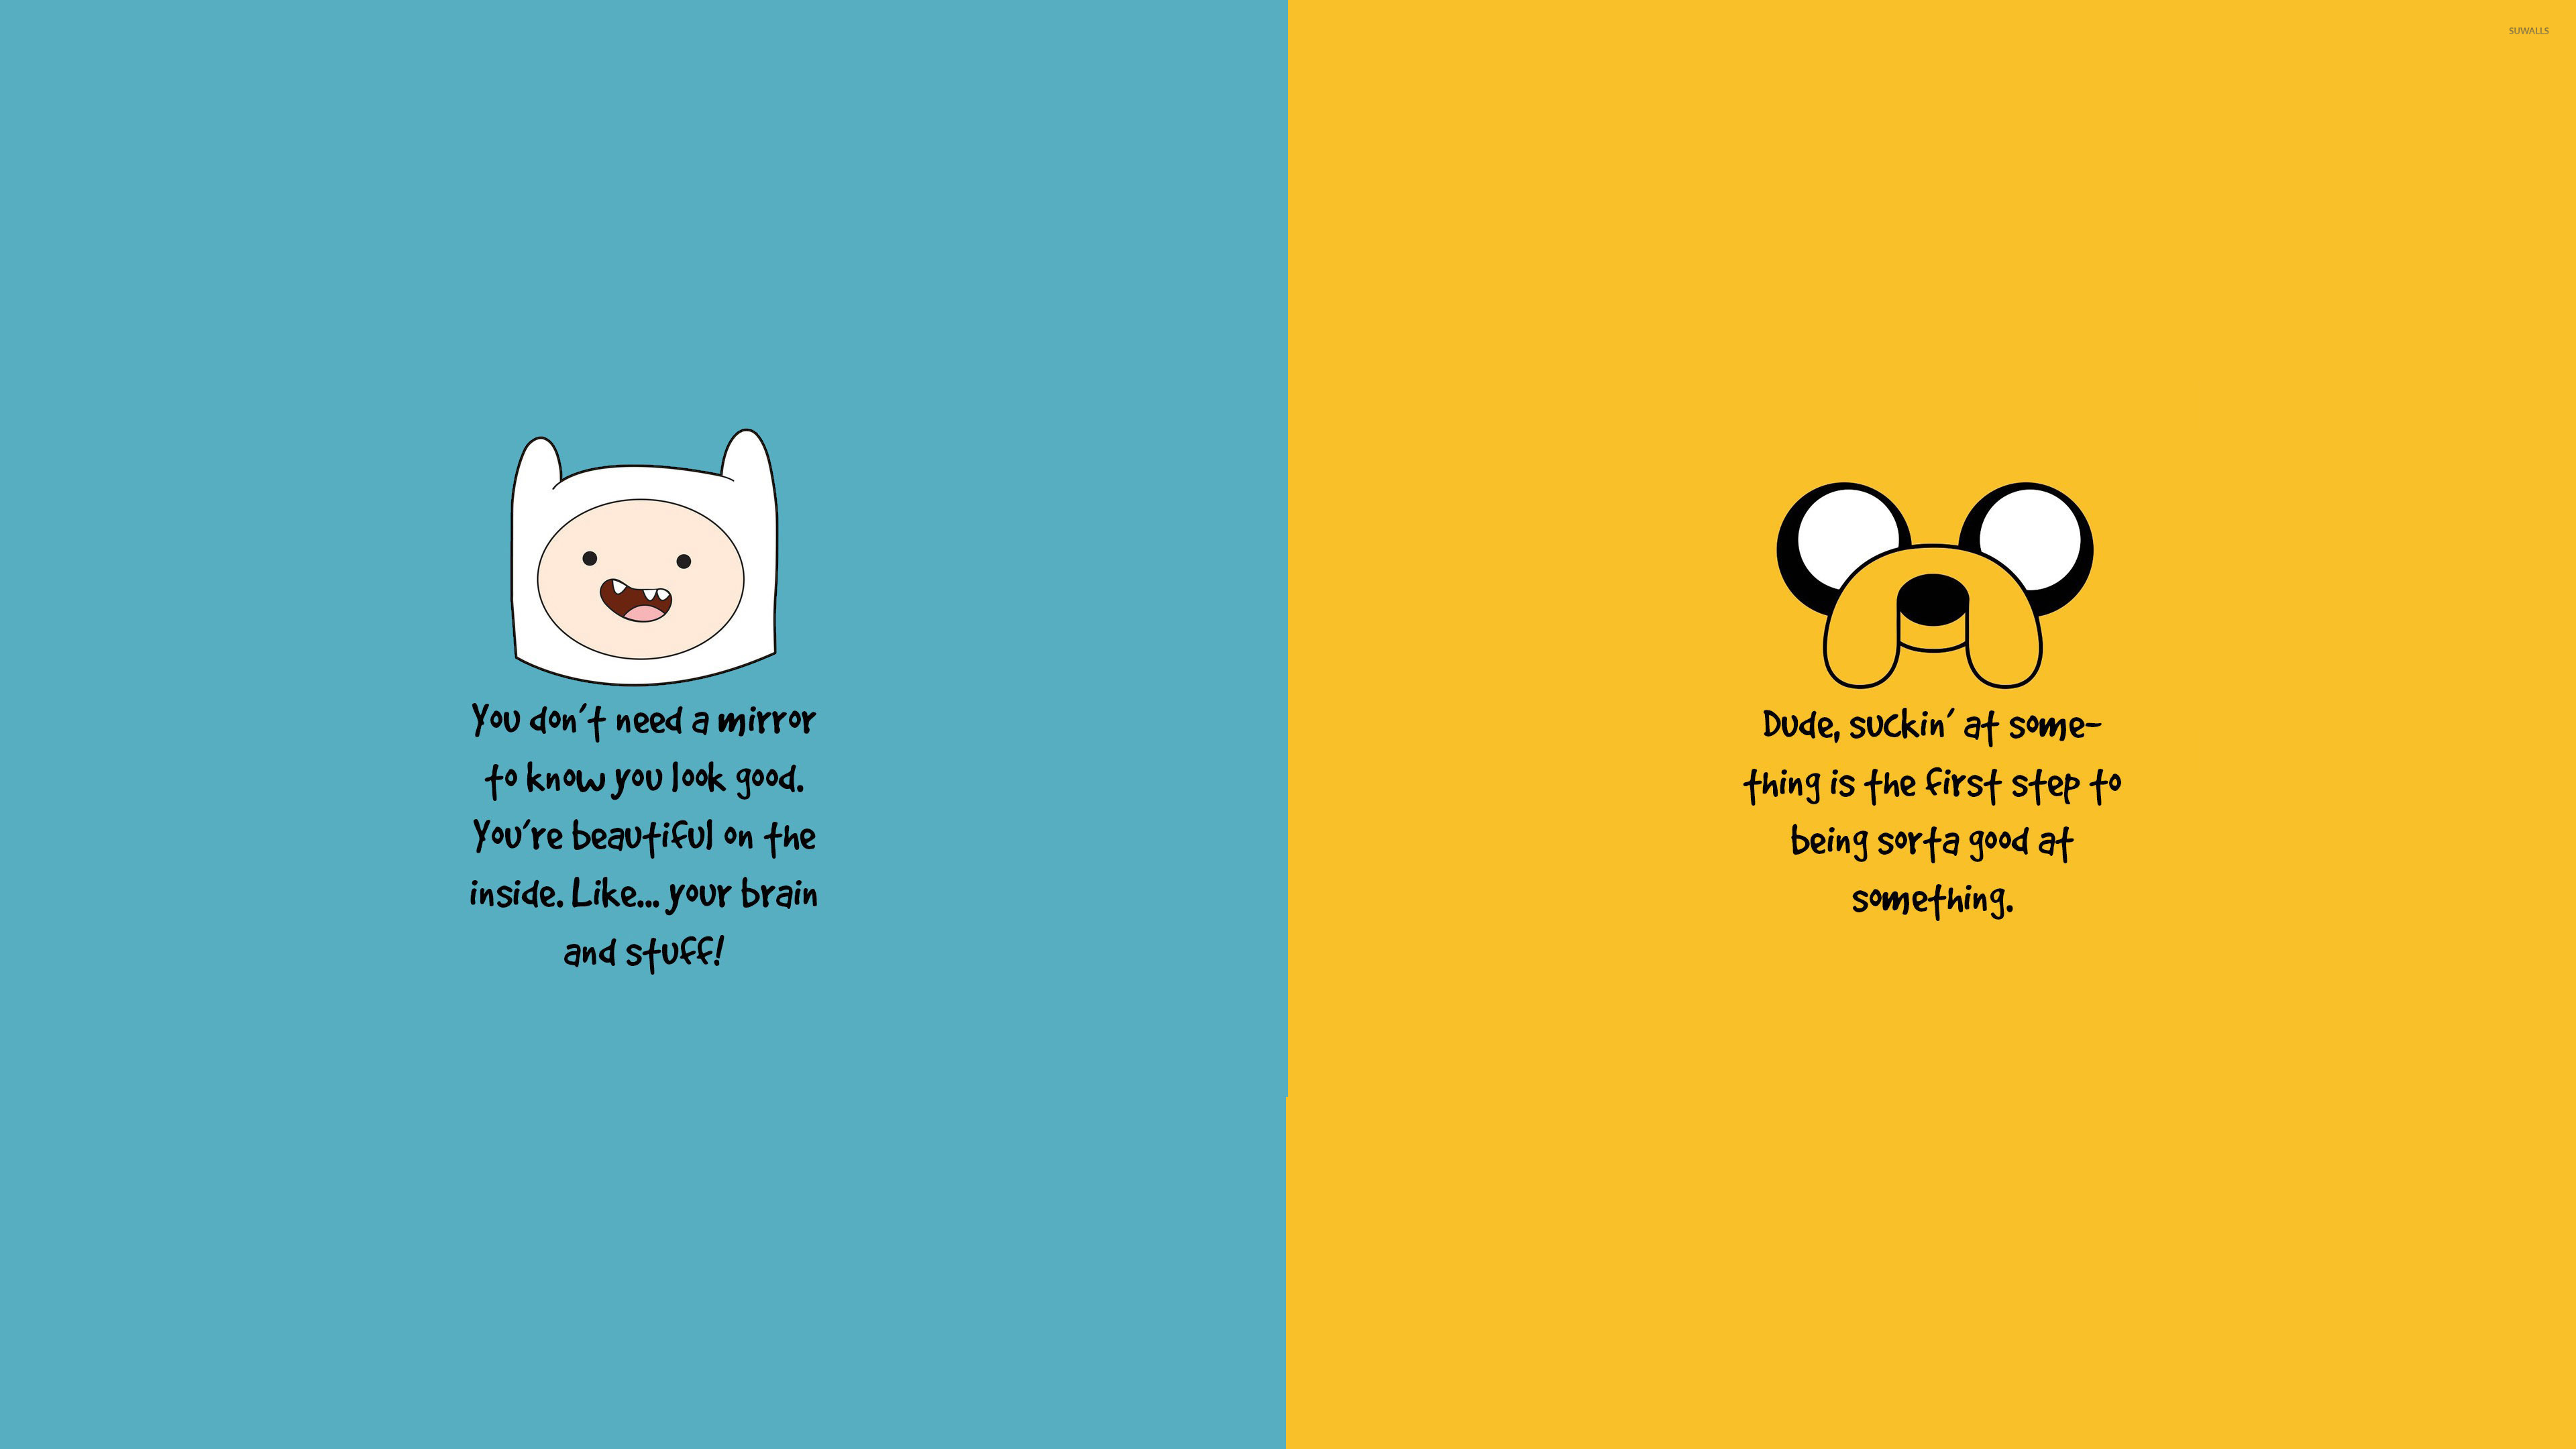 Adventure Time motivation wallpaper   Quote wallpapers   28003 3840x2160